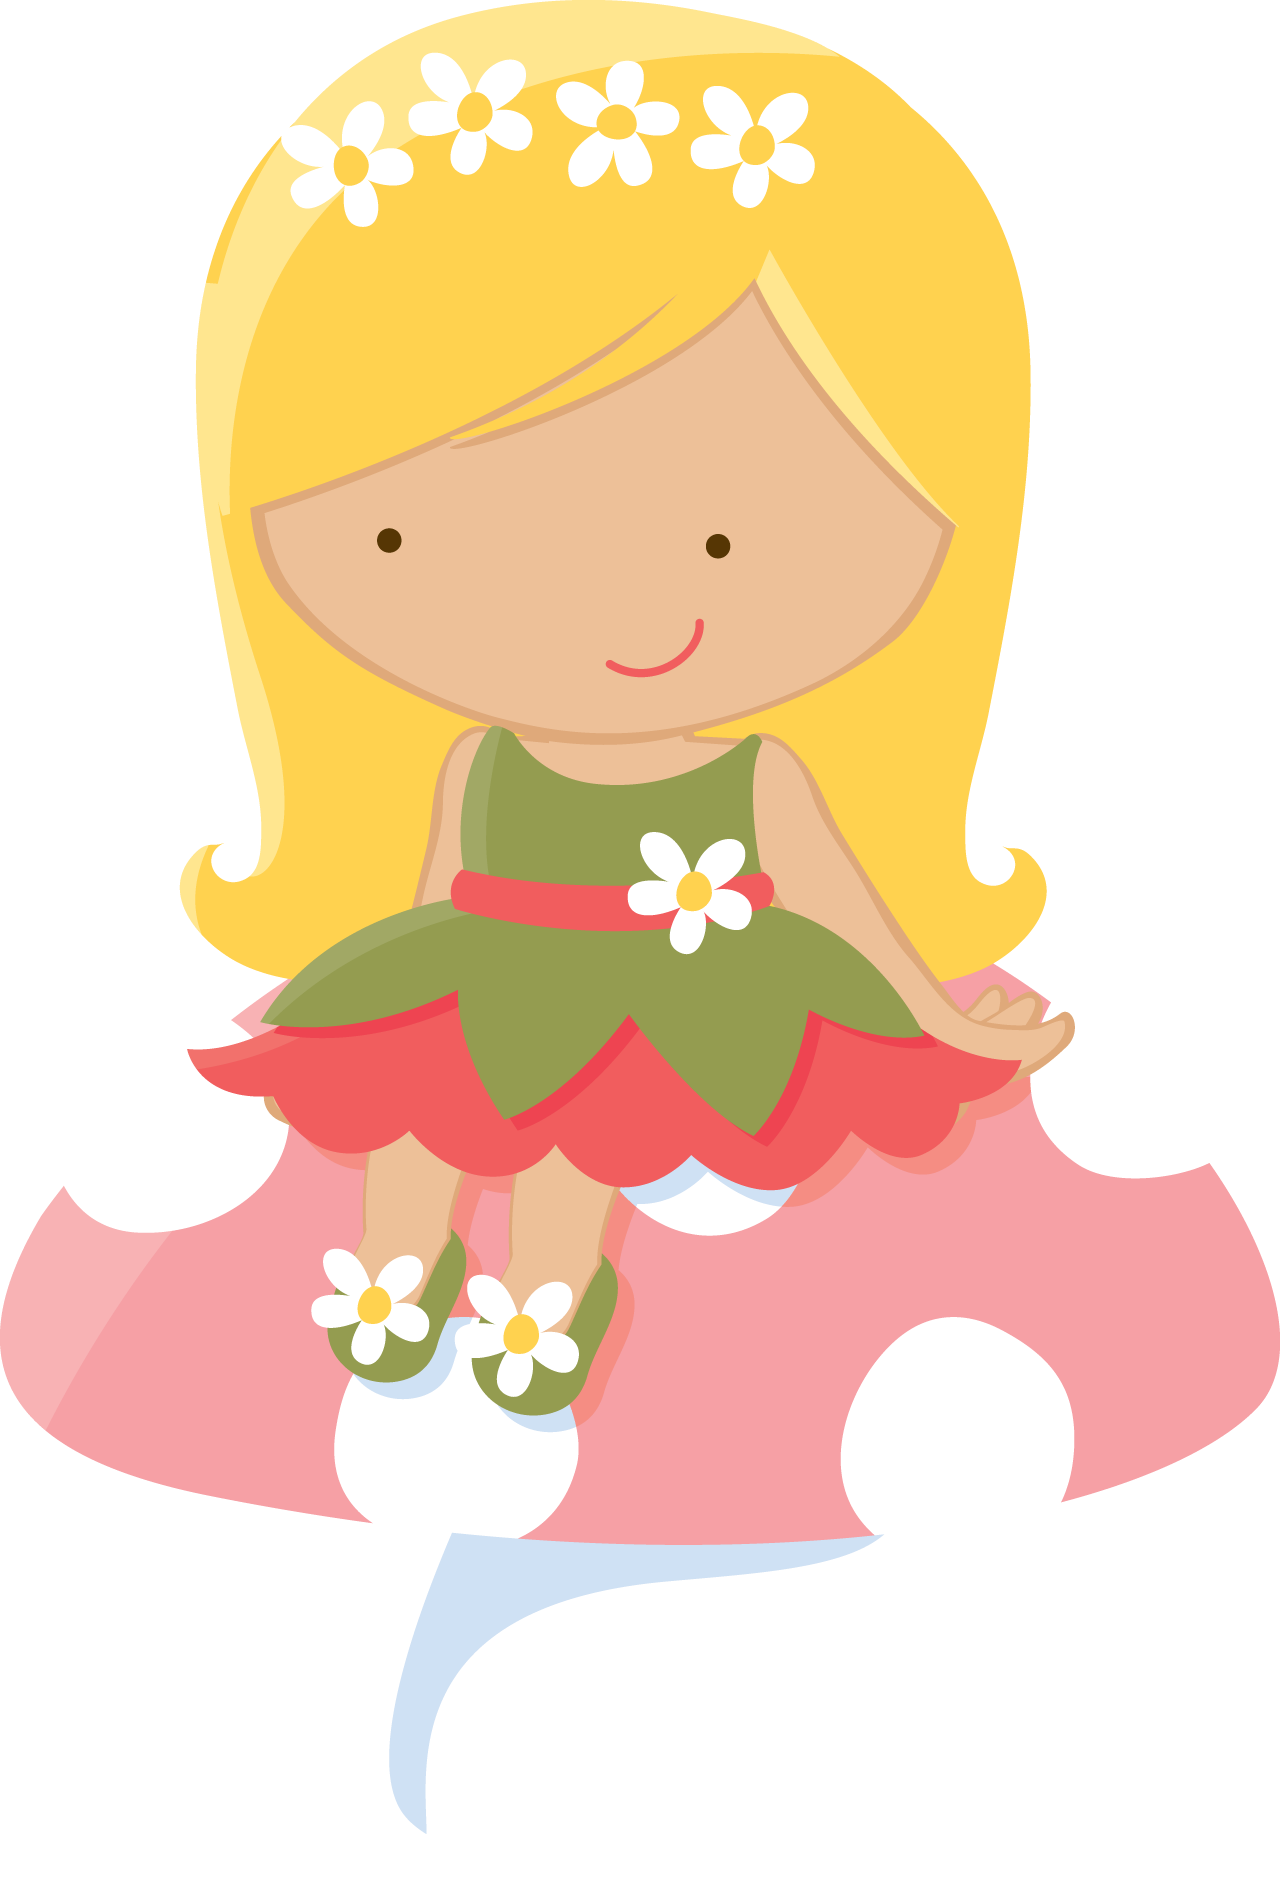 Zwd mushroom png minus. Tinkerbell clipart fairy chinese